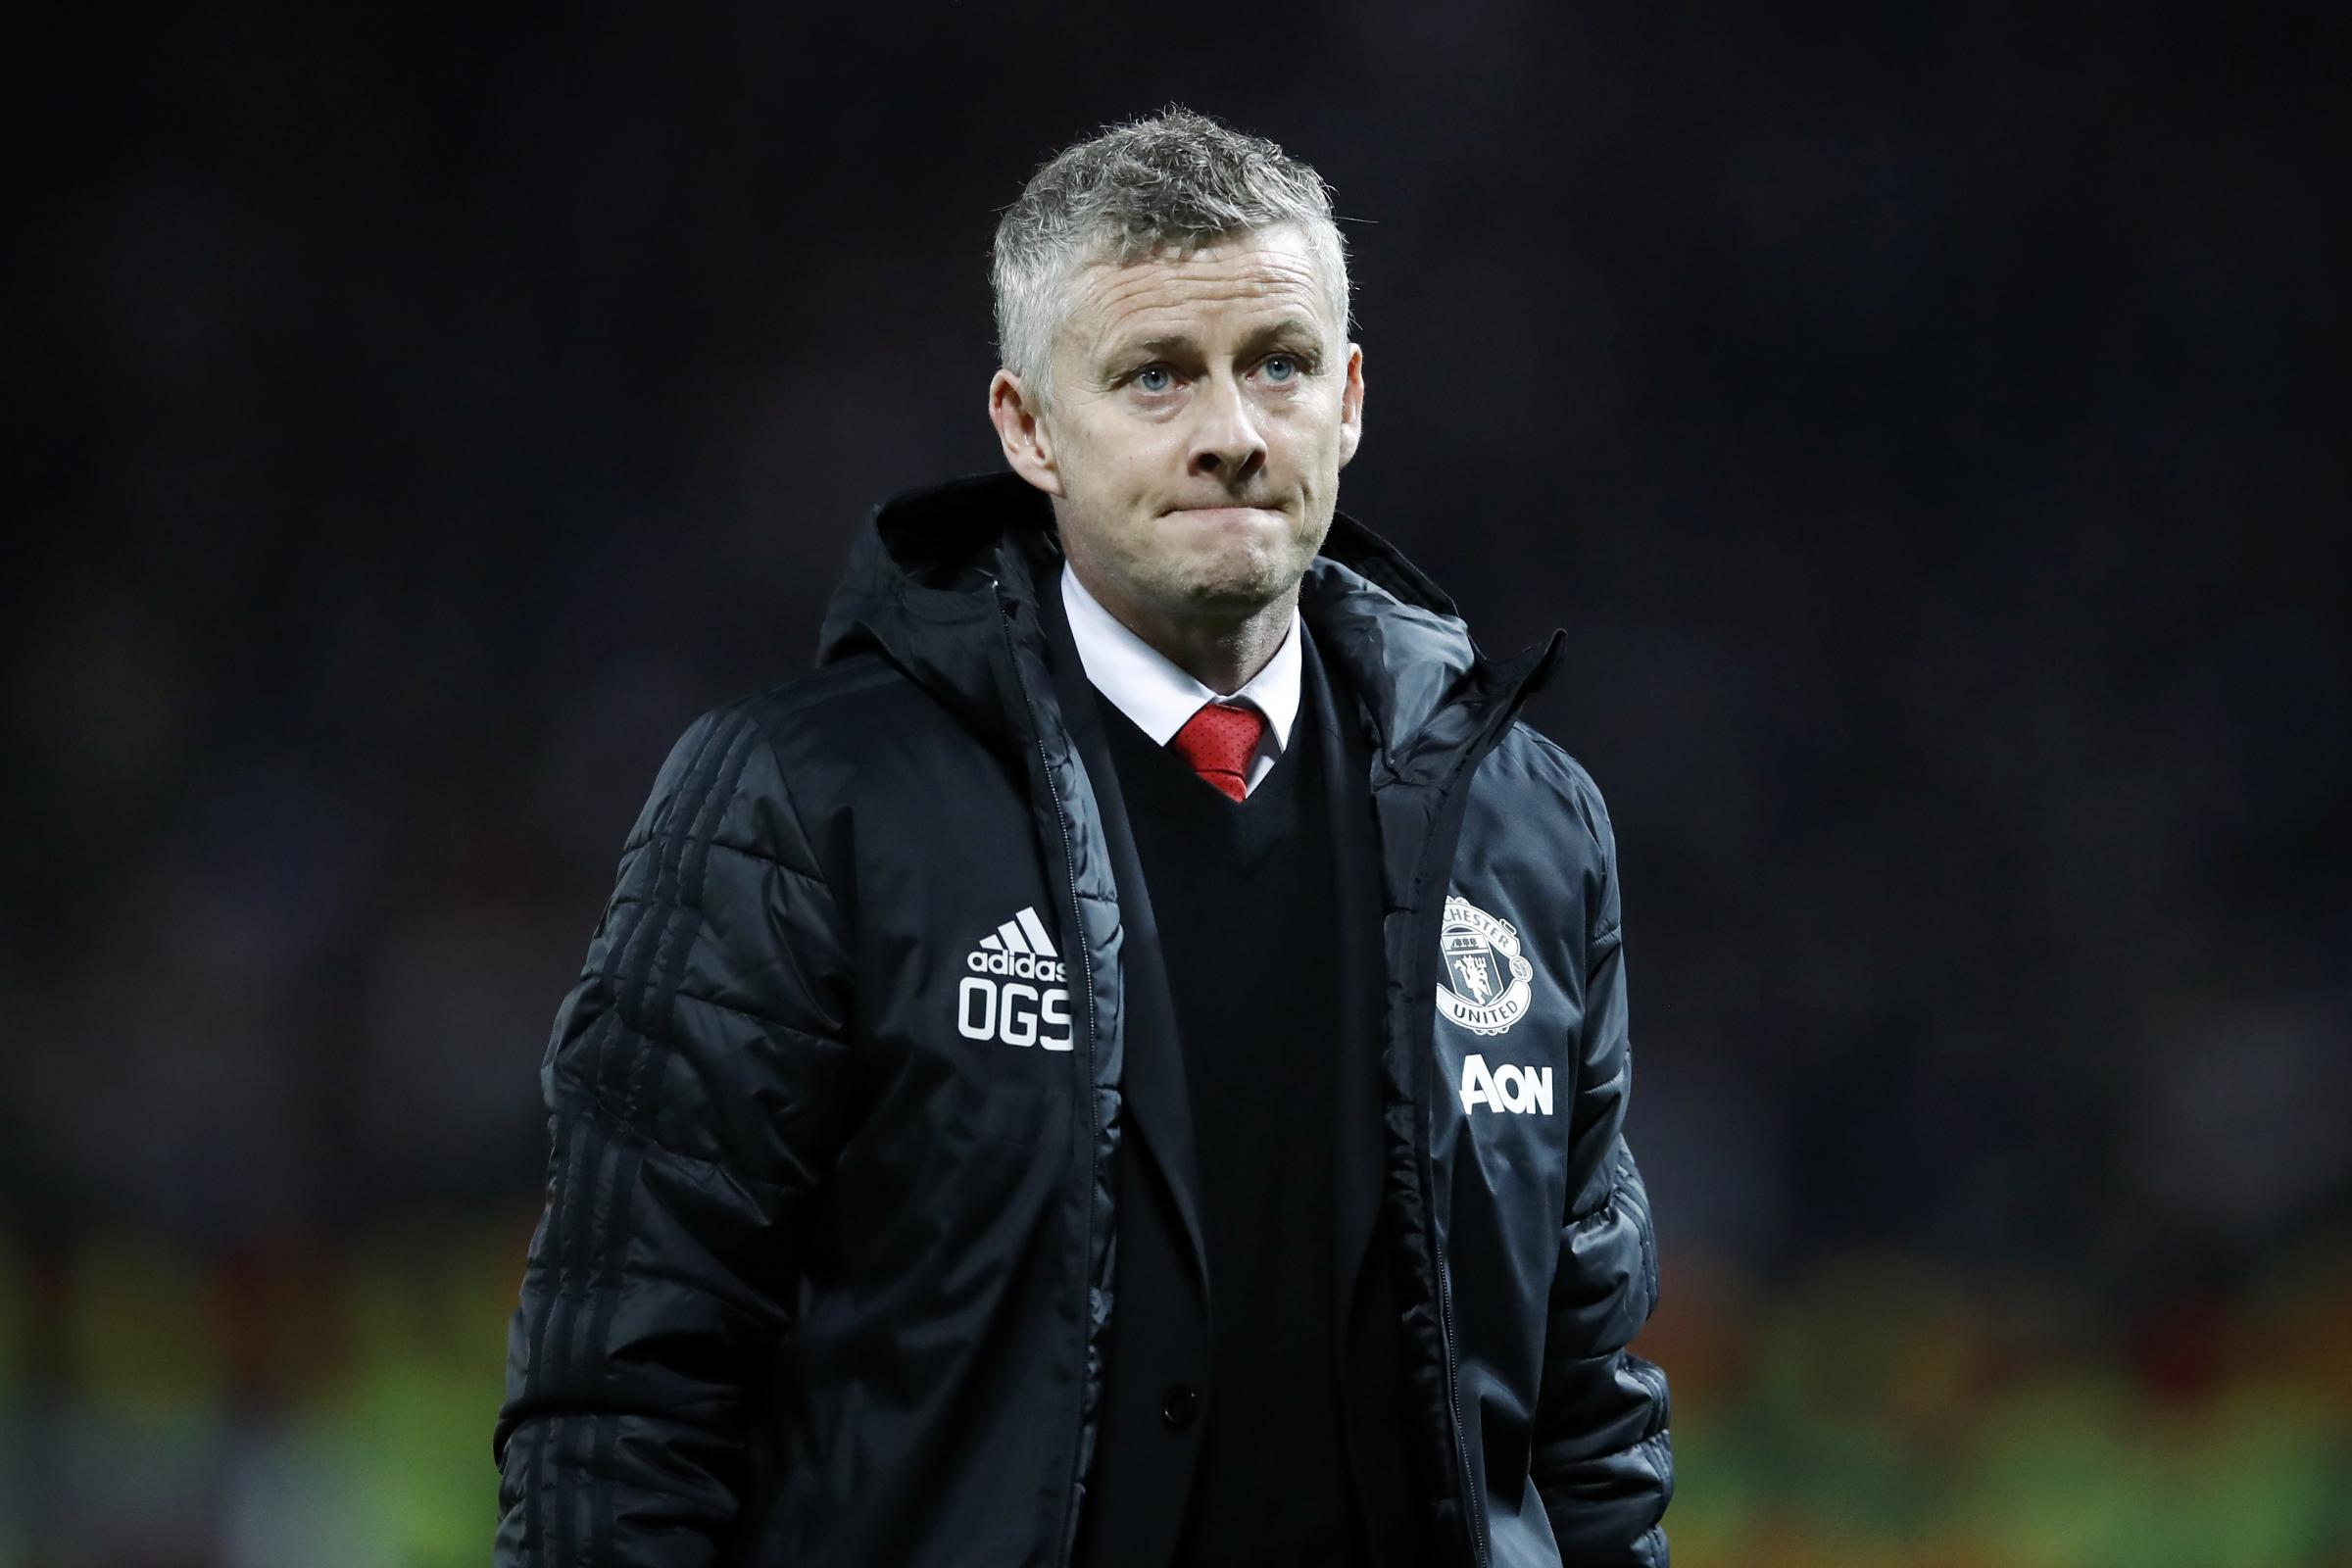 Ole Gunnar Solskjaer's Manchester United are looking to progress to the FA cup semi-finals